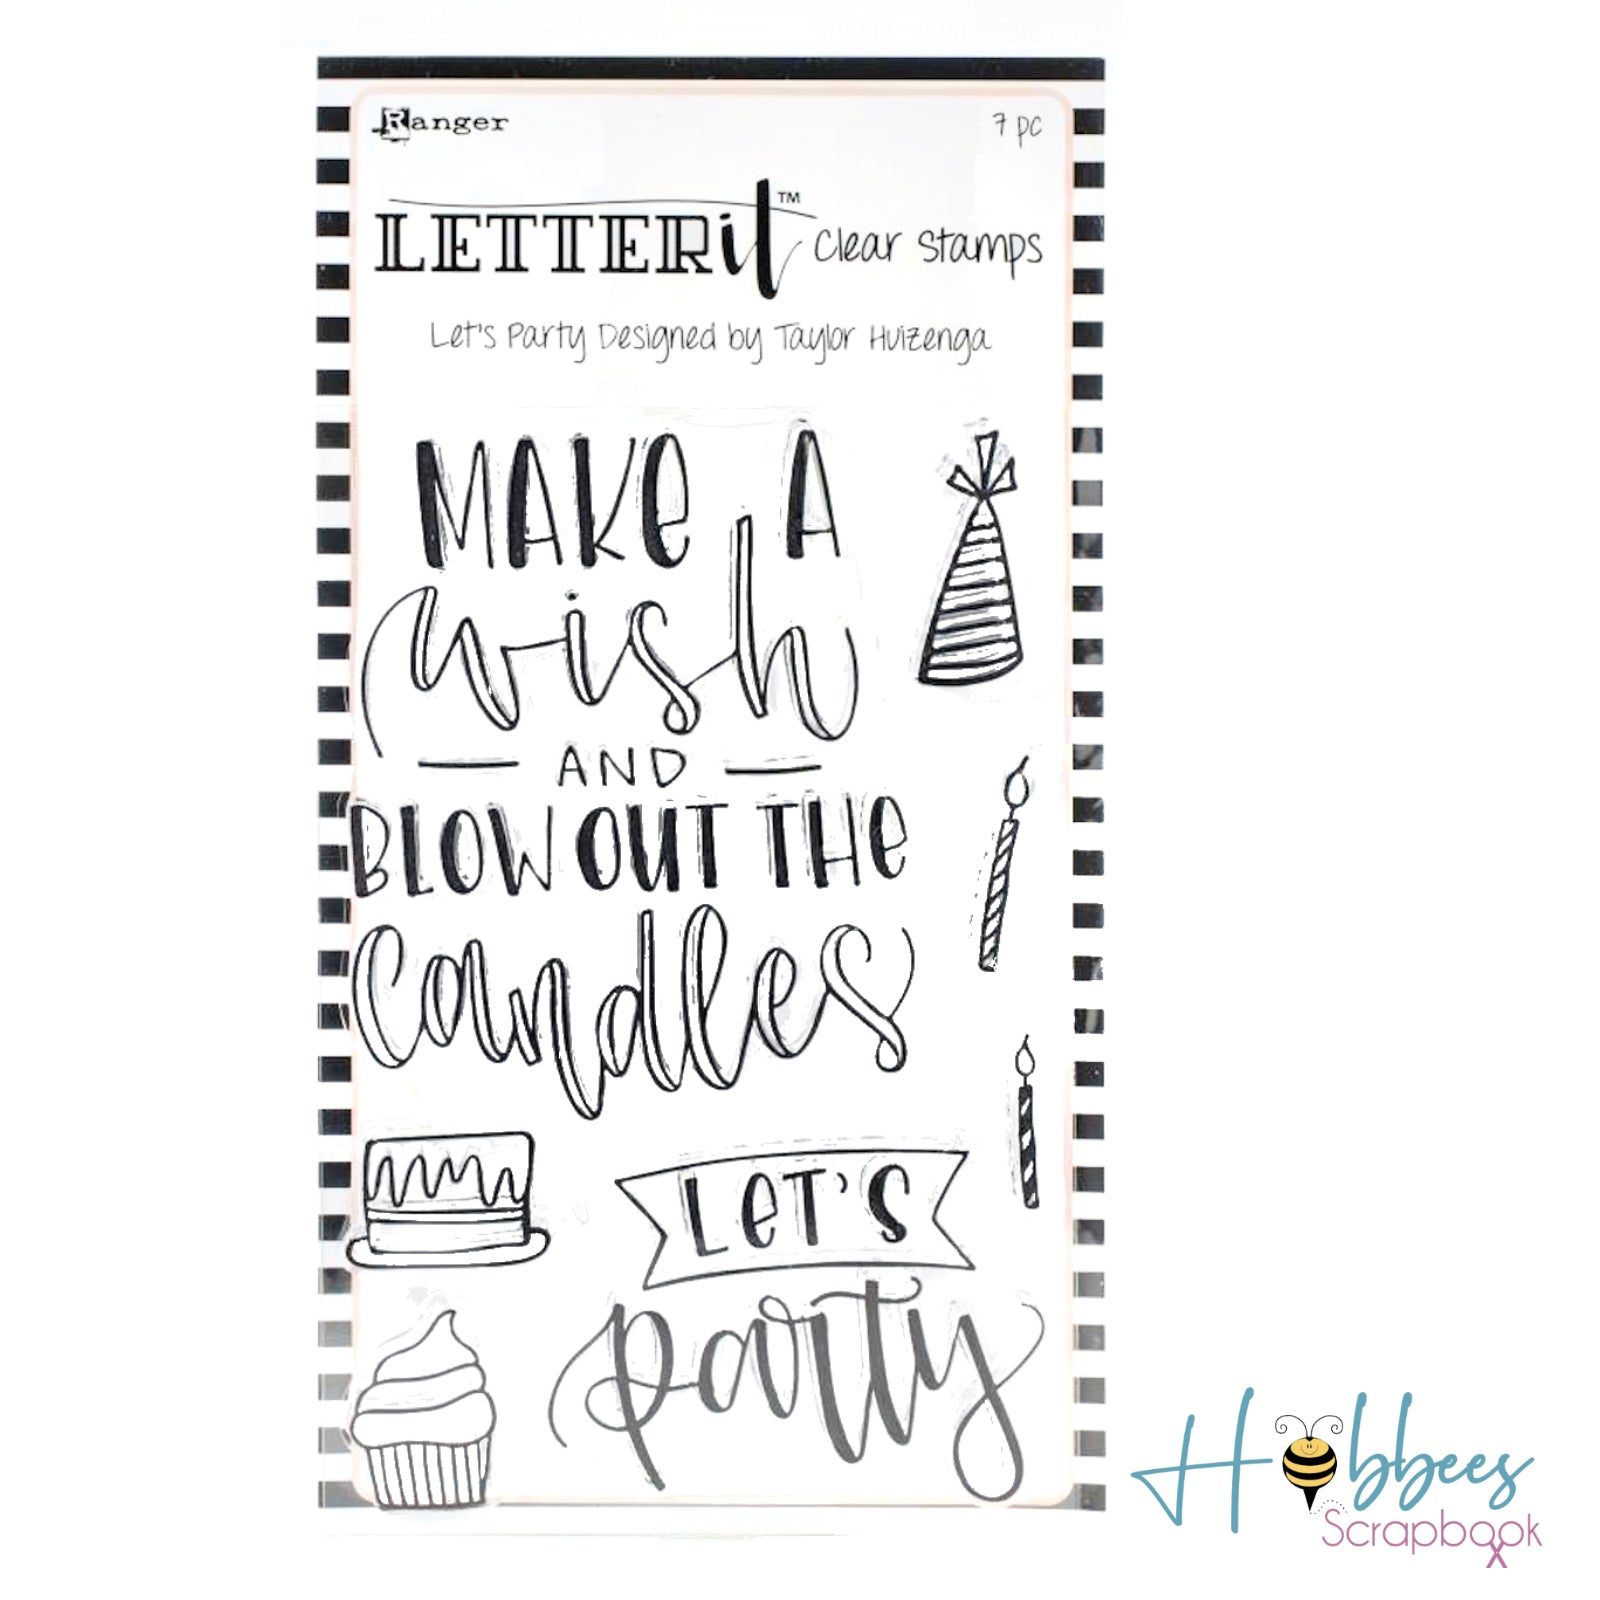 Ranger Letter It Clear Stamp / Sello Acrílico let´s party